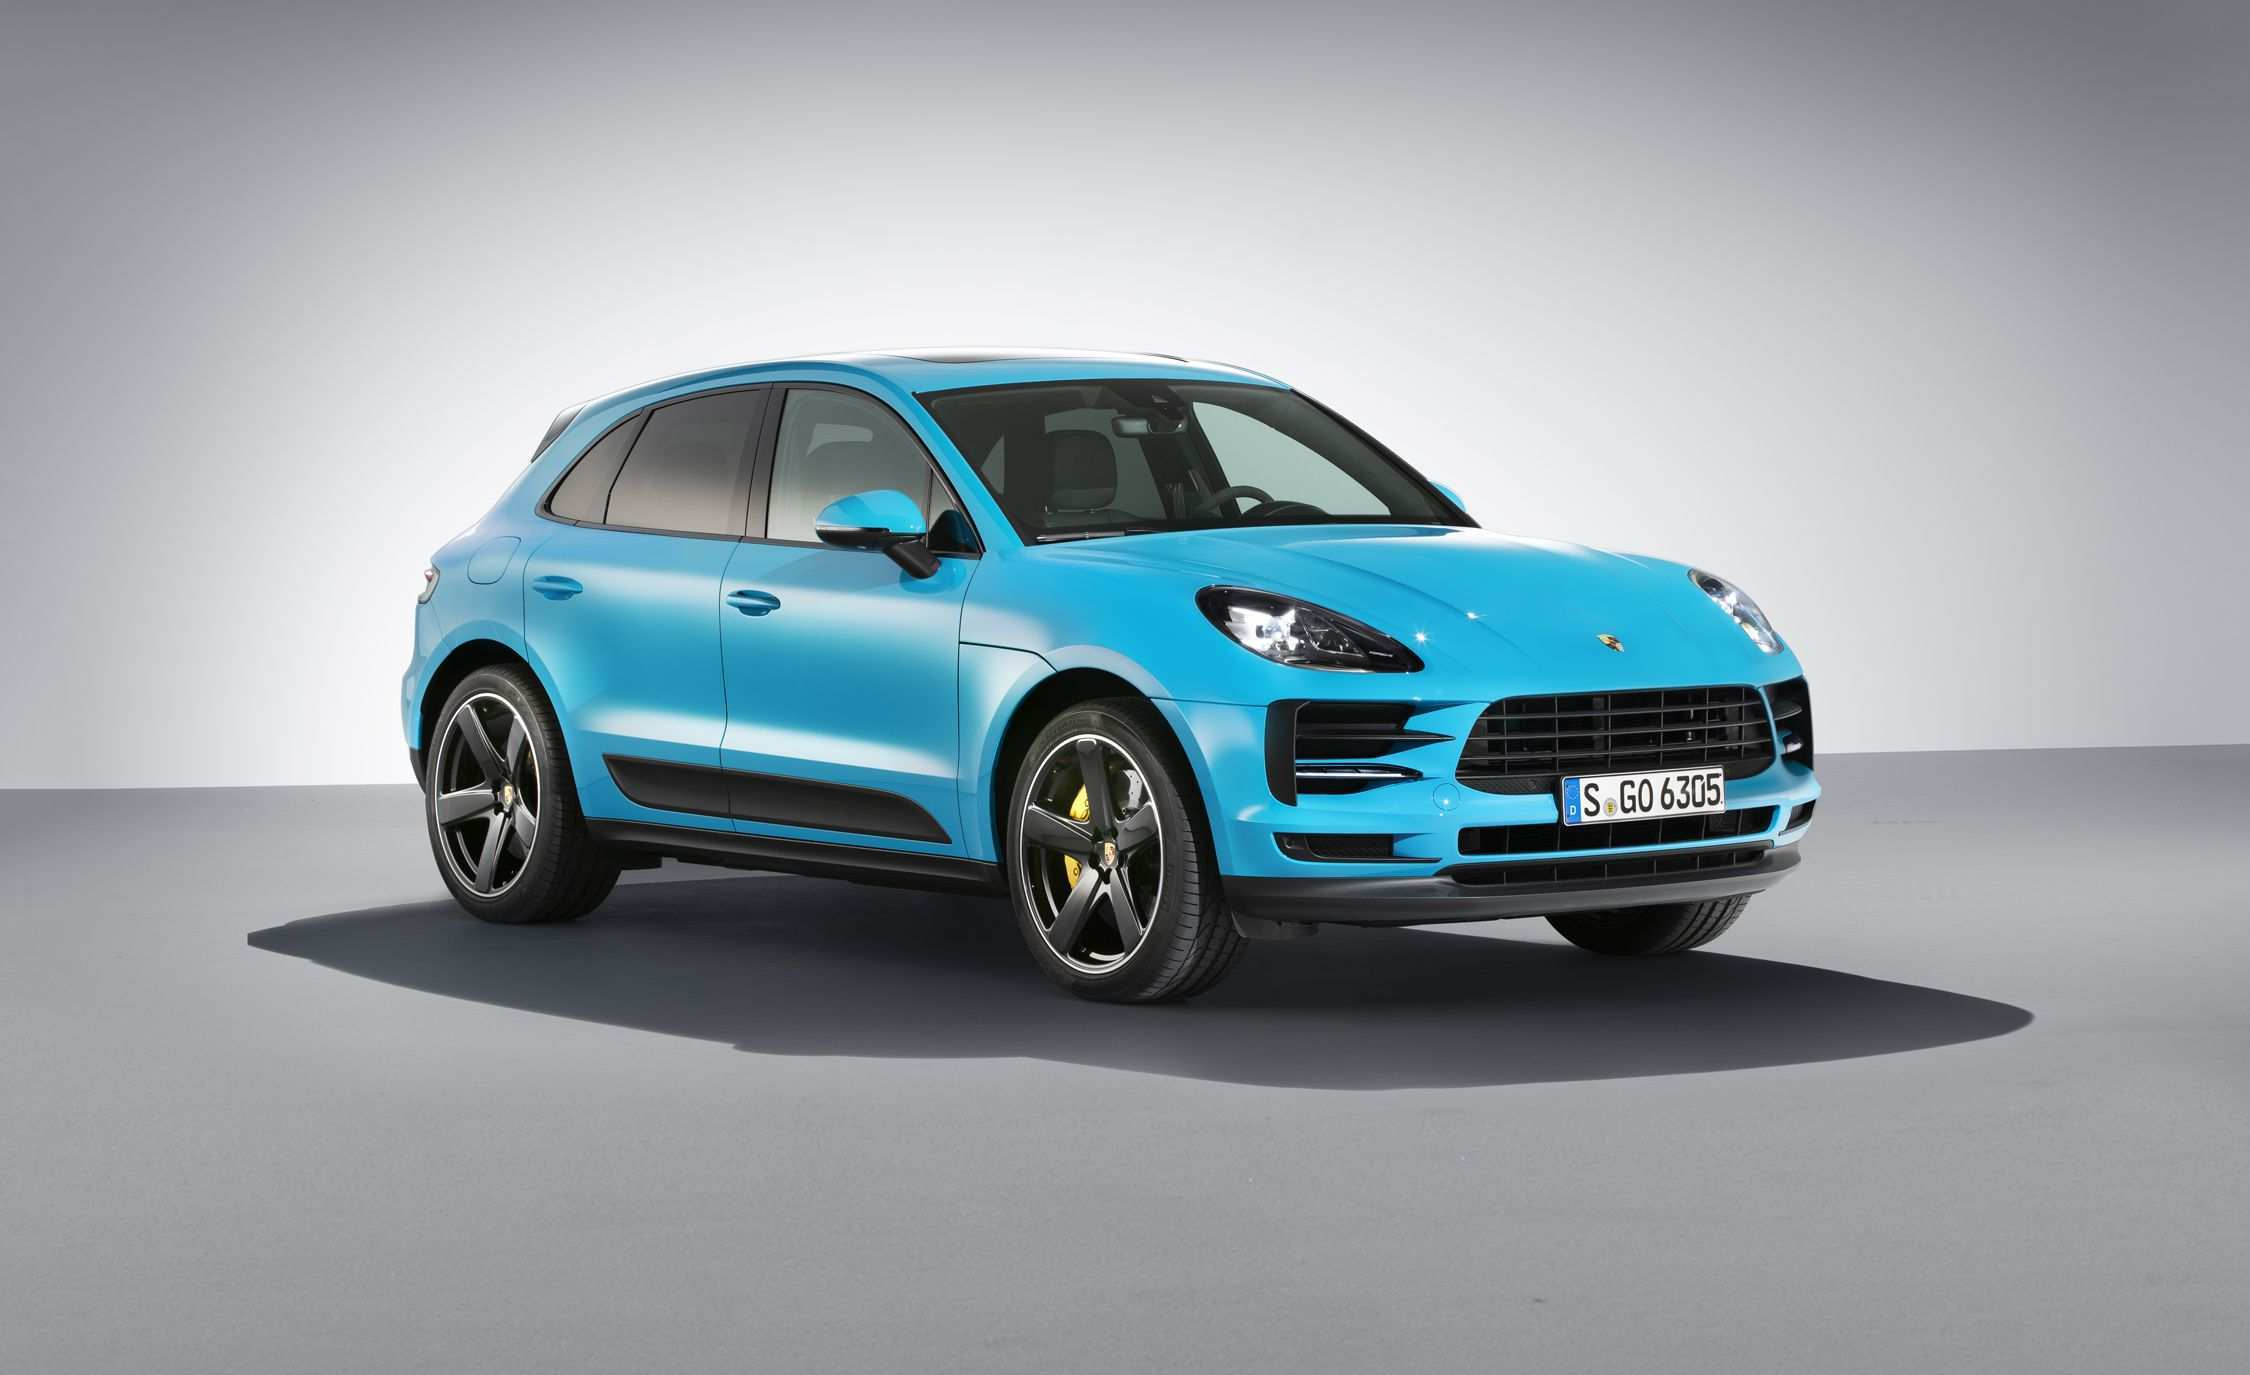 76 Best Review 2019 Porsche Macan Pricing with 2019 Porsche Macan